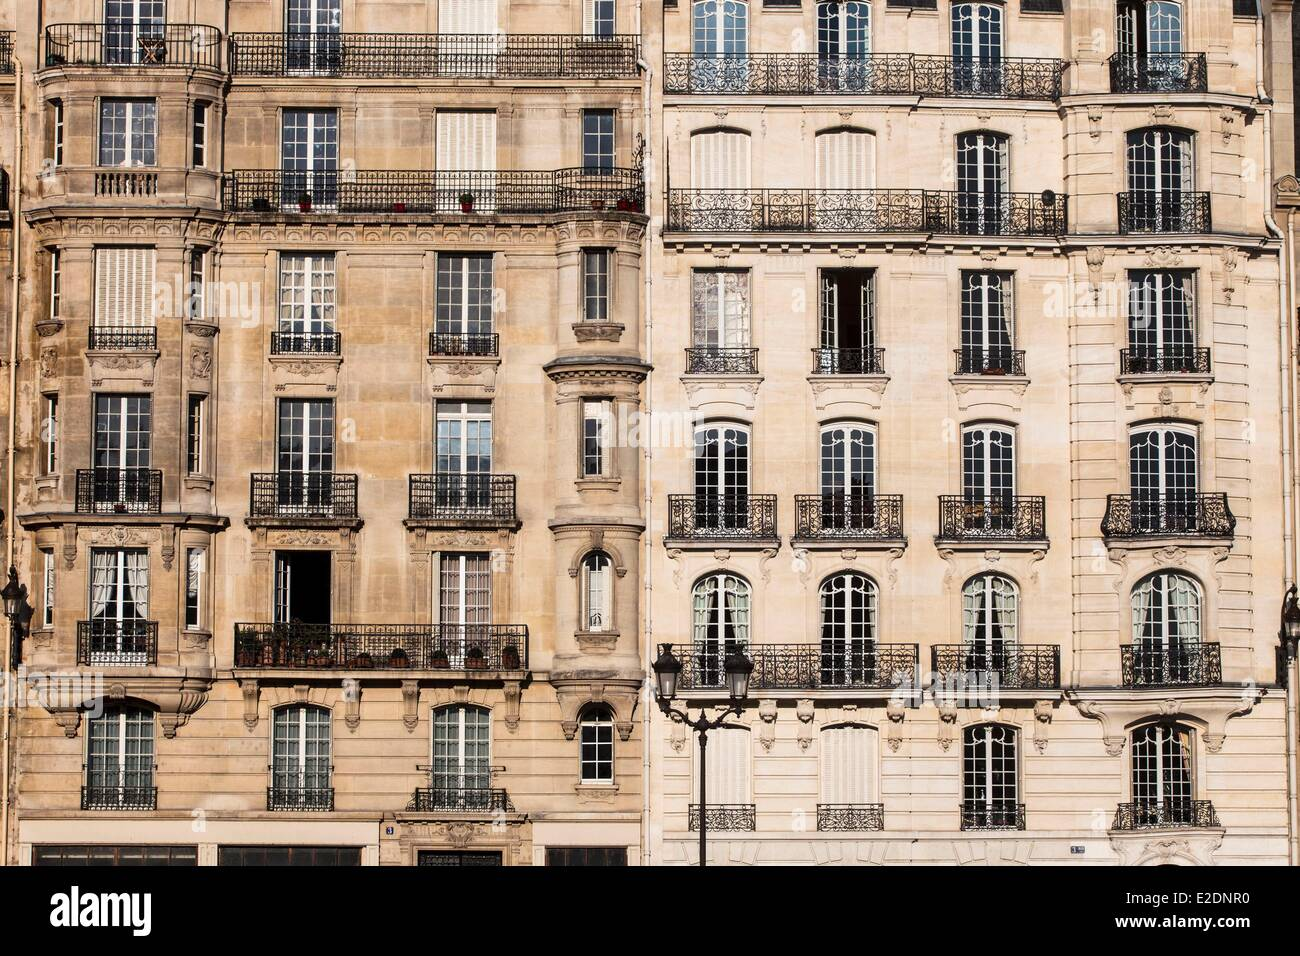 france paris haussmann building facade stock photo royalty free image 70373268 alamy. Black Bedroom Furniture Sets. Home Design Ideas